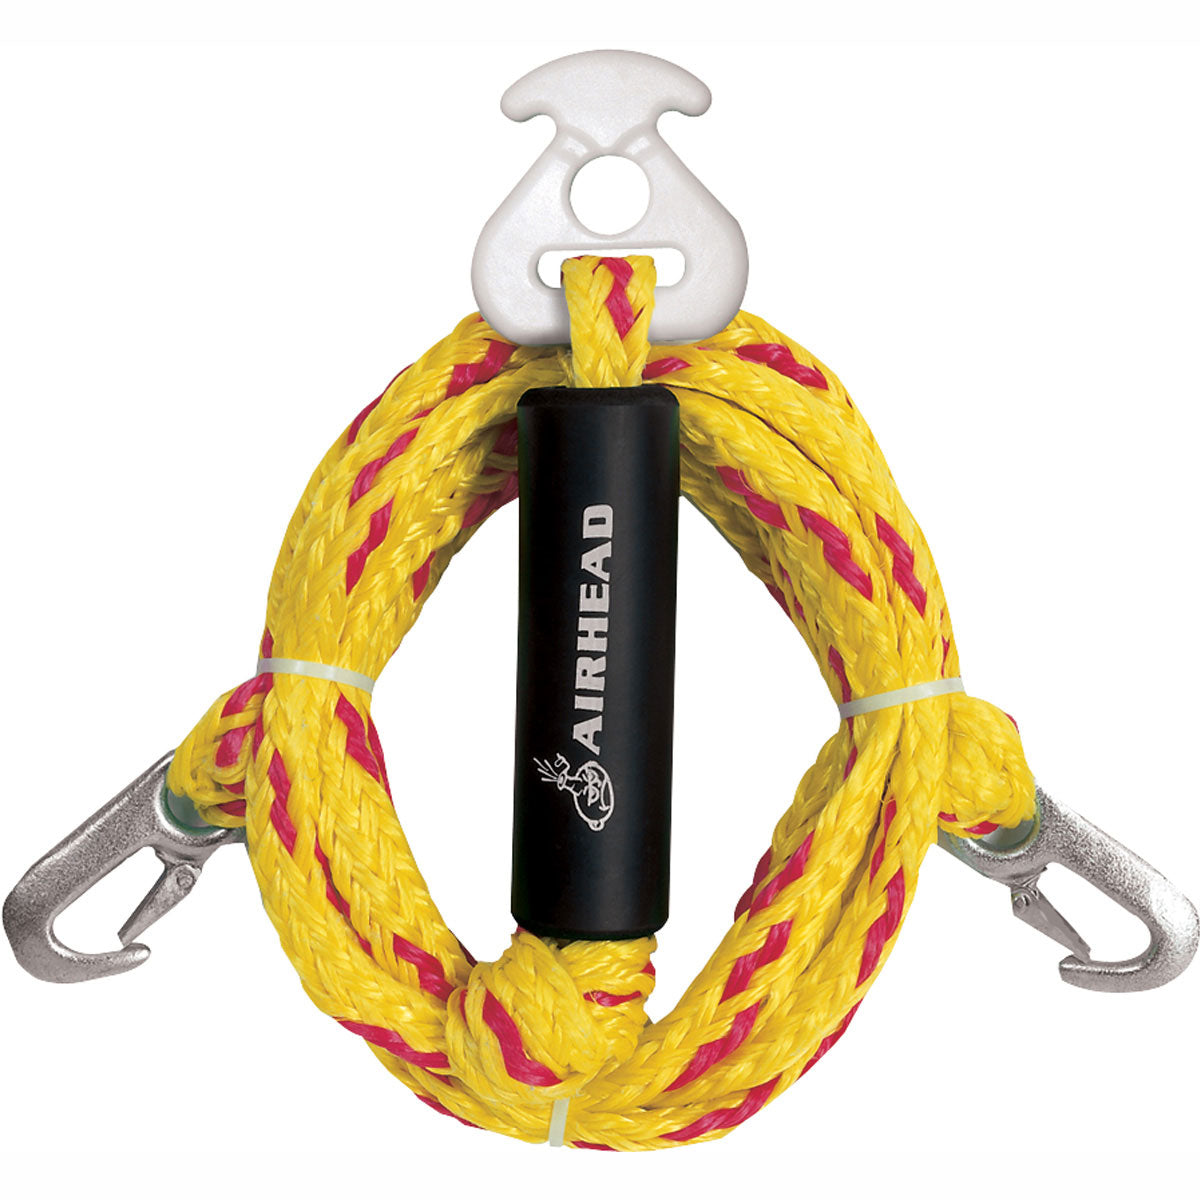 Heavy Duty Tow Harness - 4 Riders | Airhead on